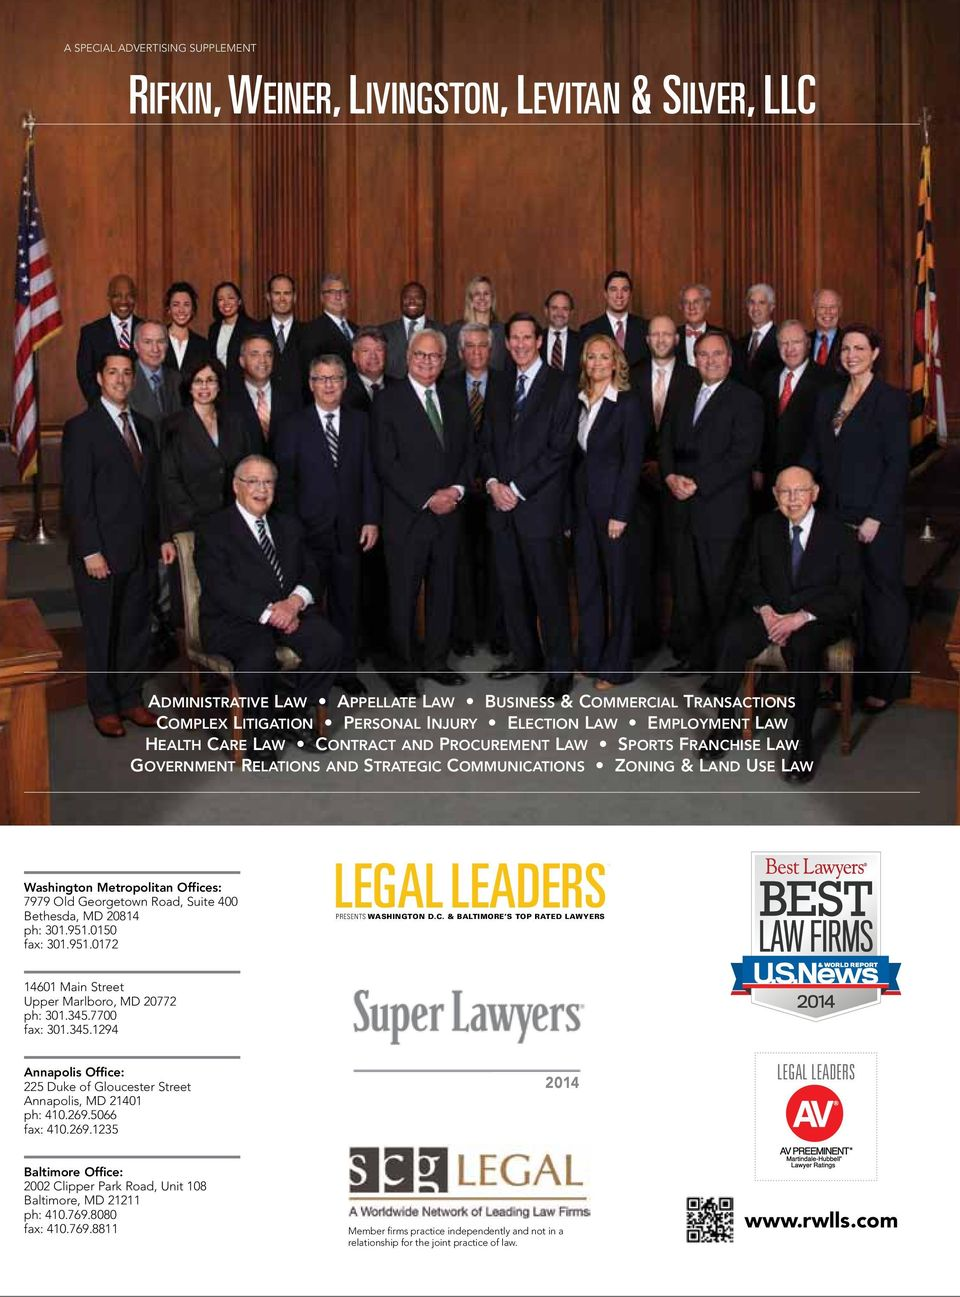 Bethesda, md 20814 ph: 301.951.0150 fax: 301.951.0172 LEGAL LEADERS presents washington D.c. & baltimore s top rated lawyers 14601 main street upper marlboro, md 20772 ph: 301.345.